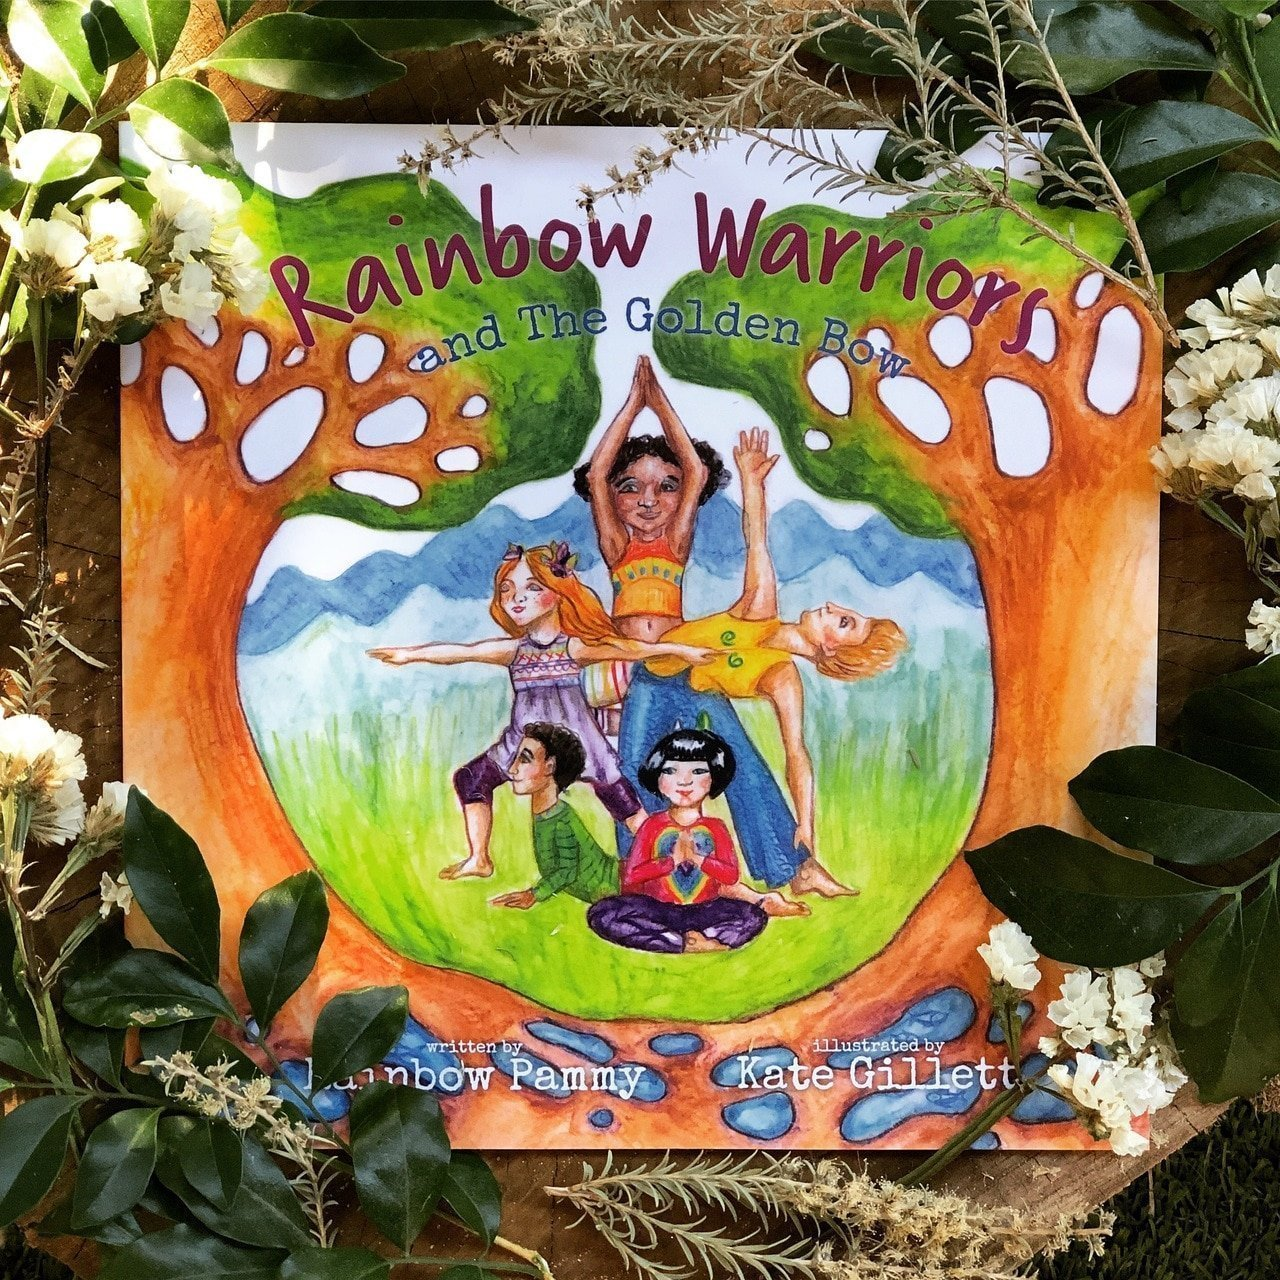 Rainbow Warriors and The Golden Bow